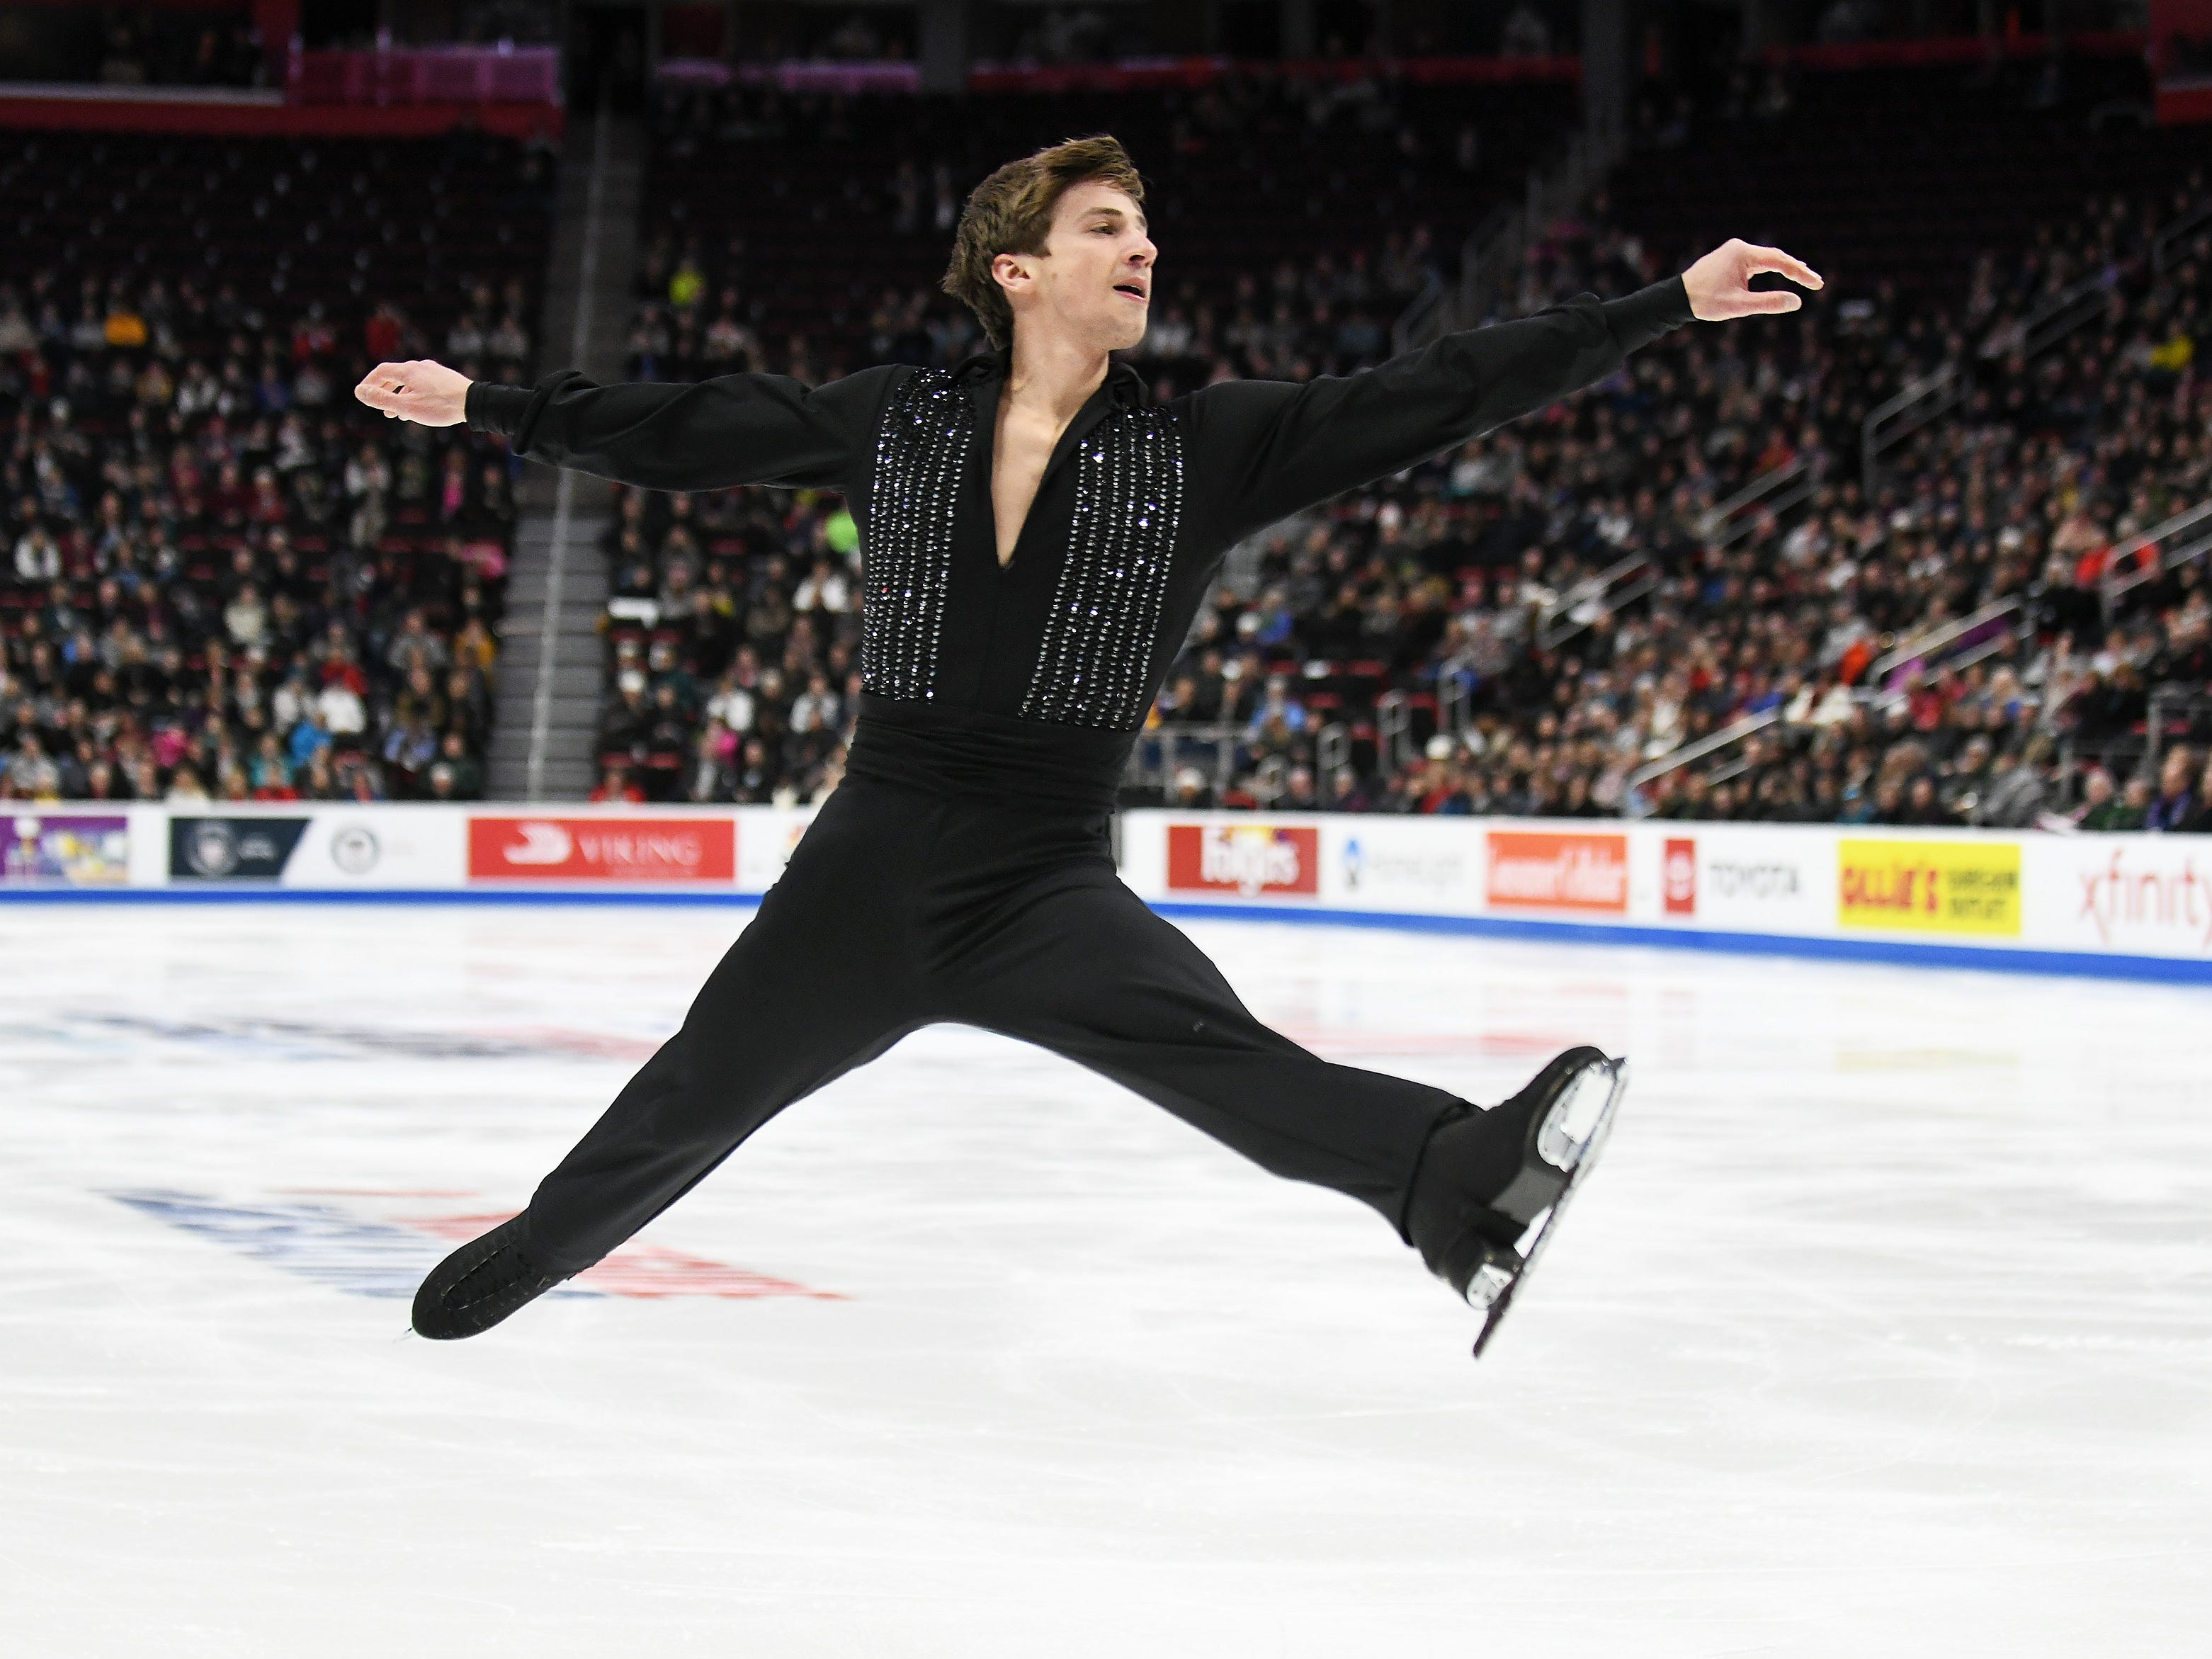 Timothy Dolensky skates in the men's free skate.